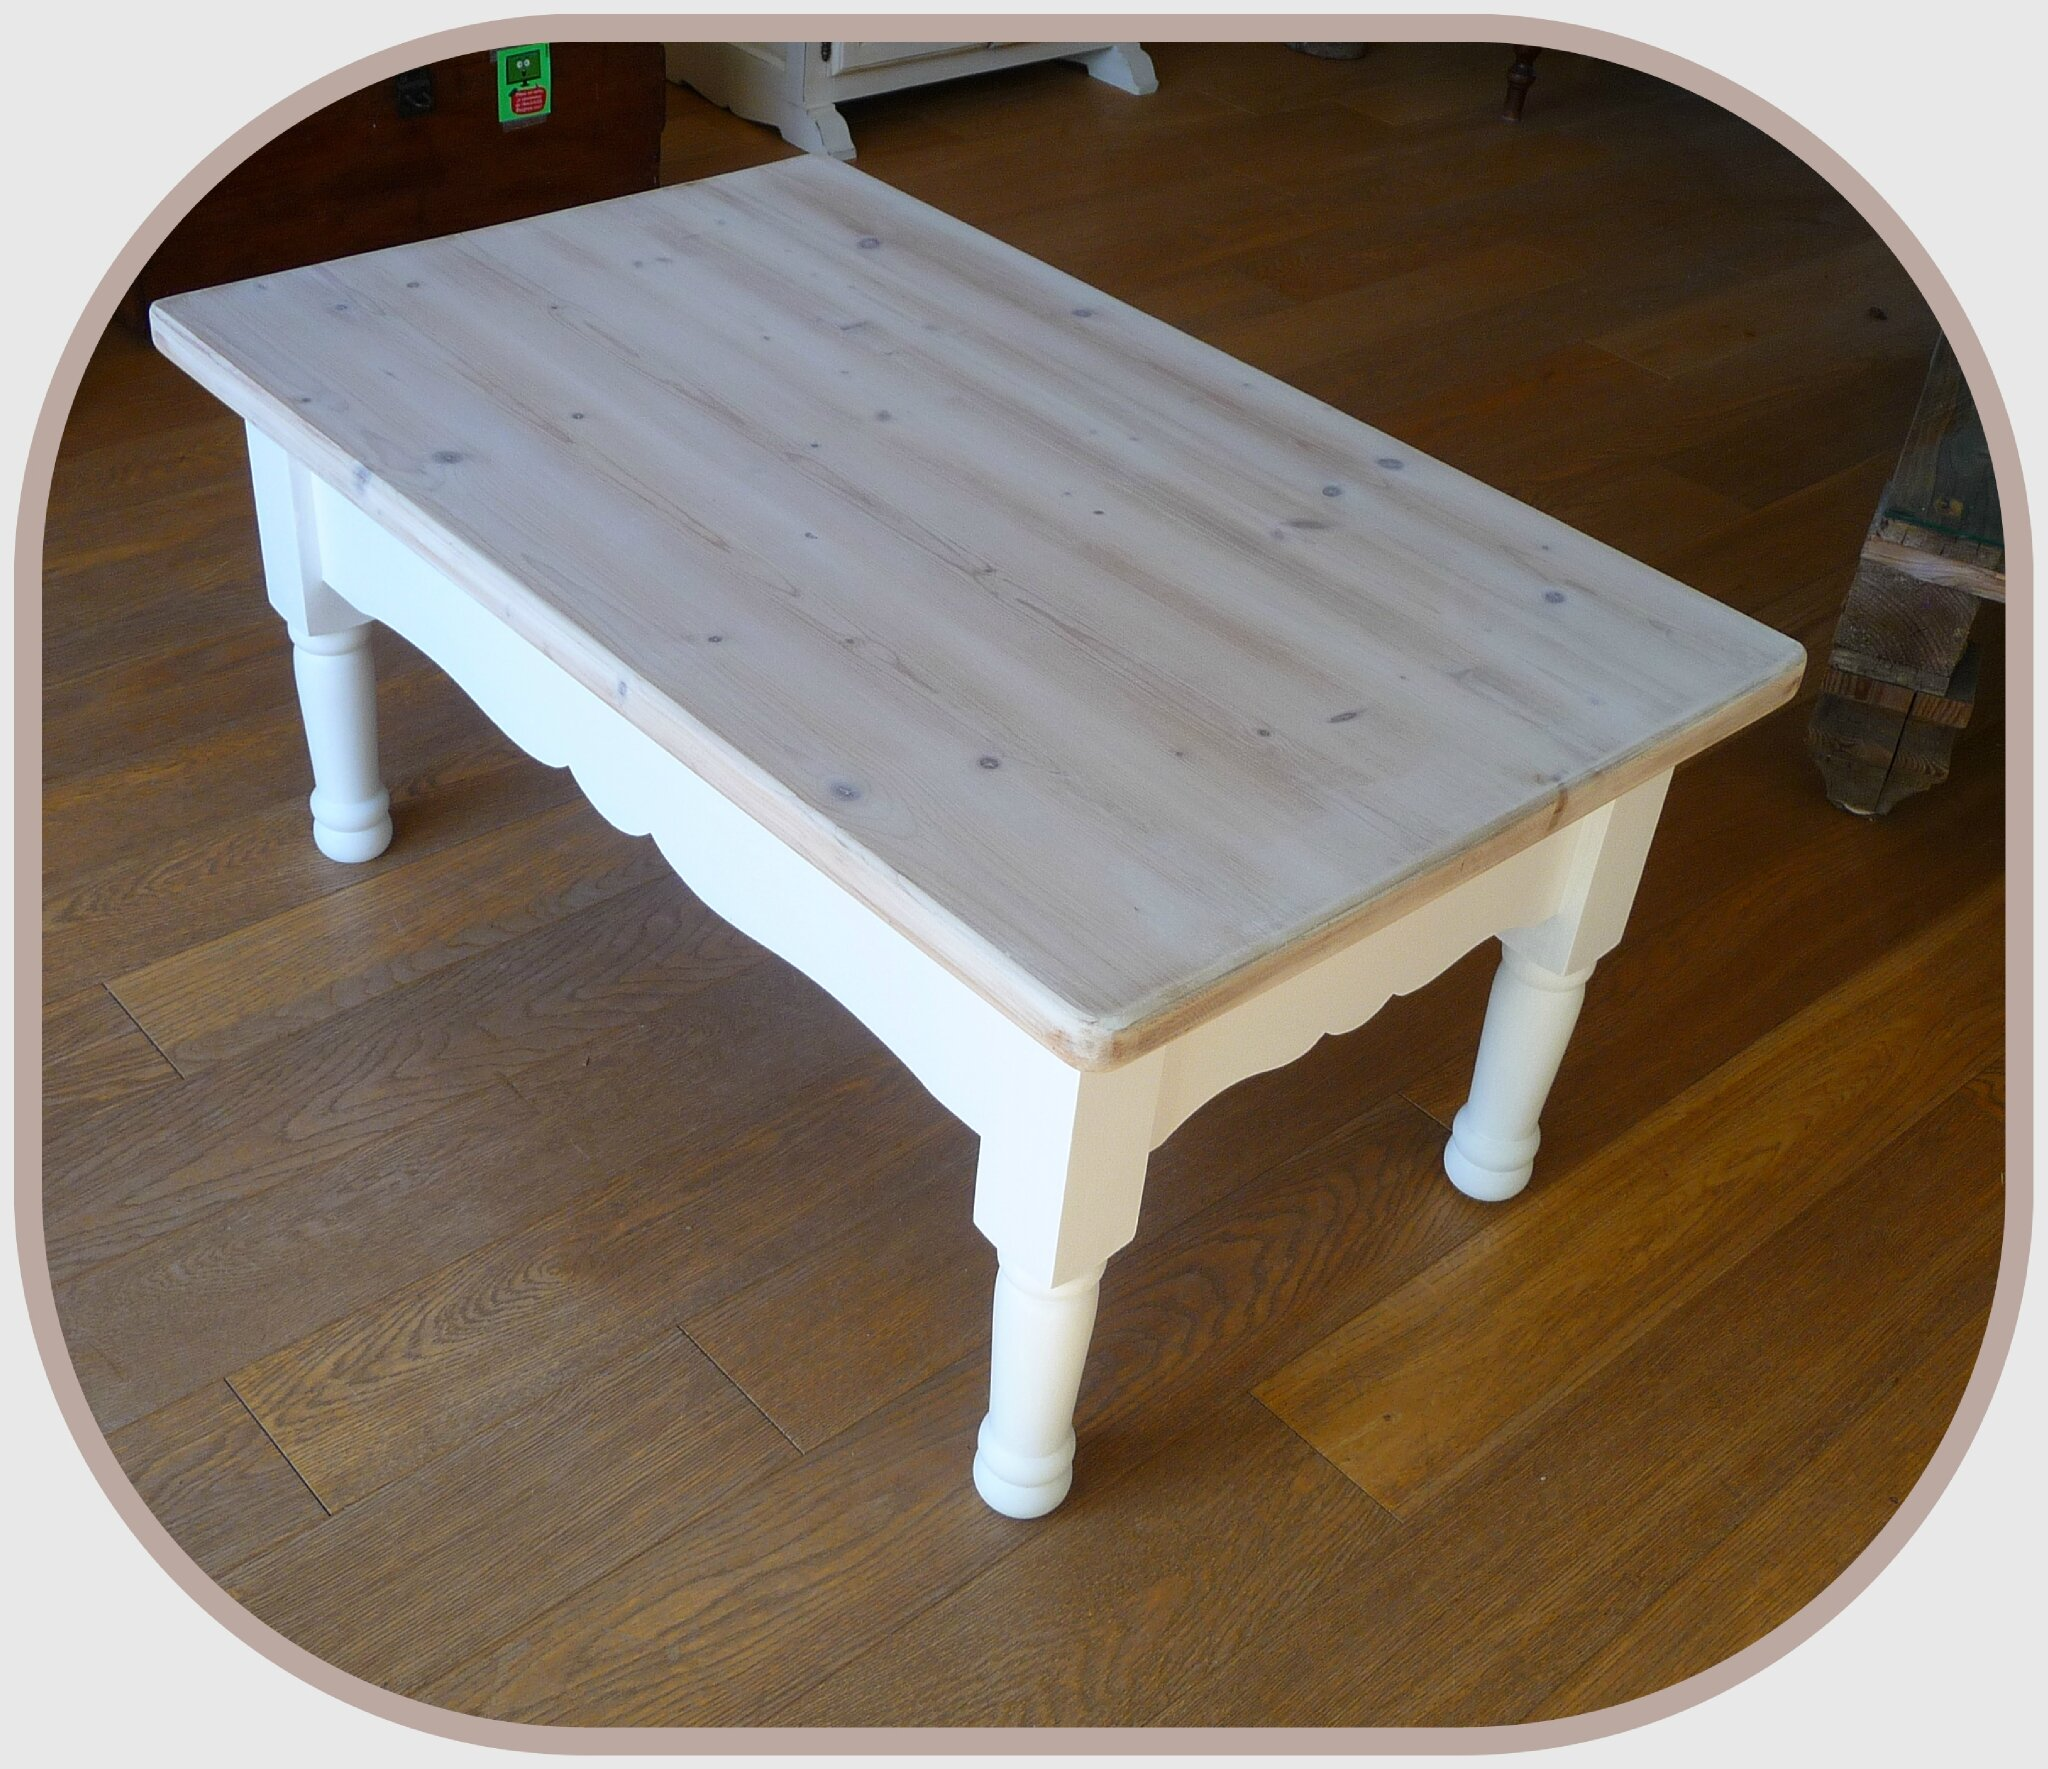 Petite table basse en pin l 39 atelier de mathilde - Table basse bois blanc ceruse ...